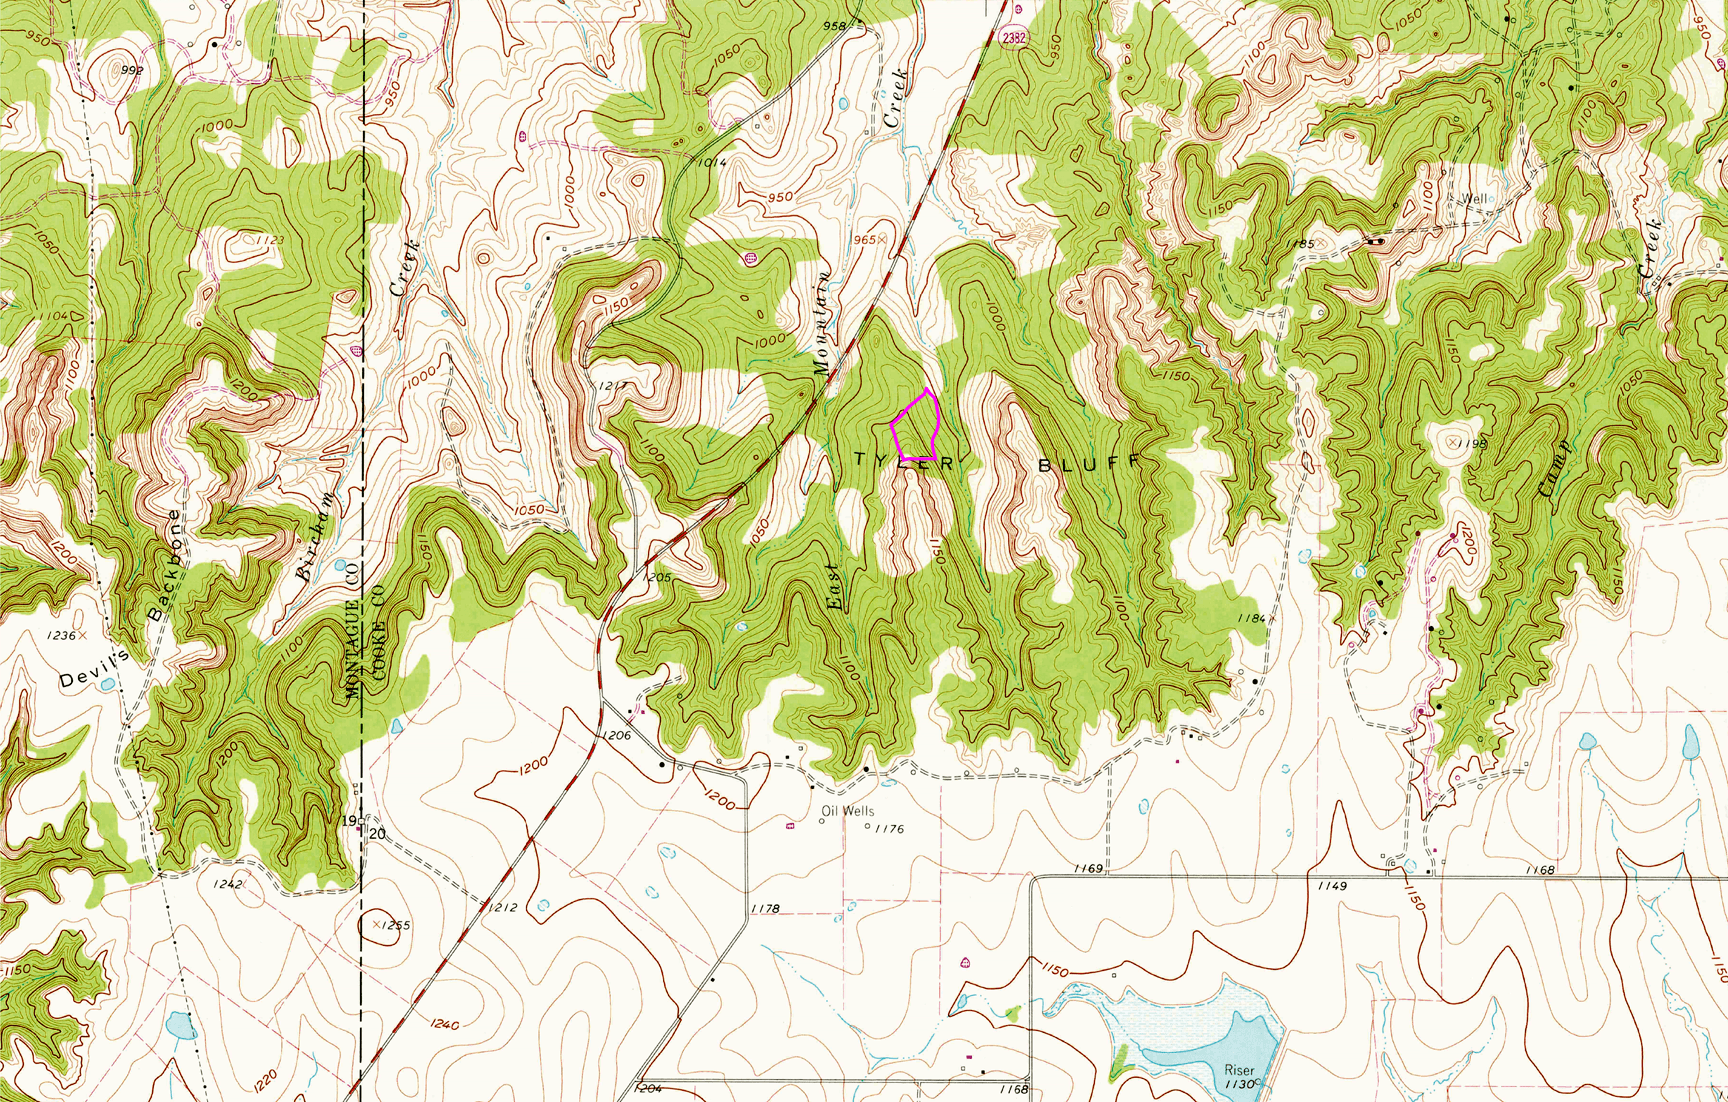 Click this image for a larger version. The pink-lined shape indicates the topographical placement of my acreage outside of Saint Jo, Texas.